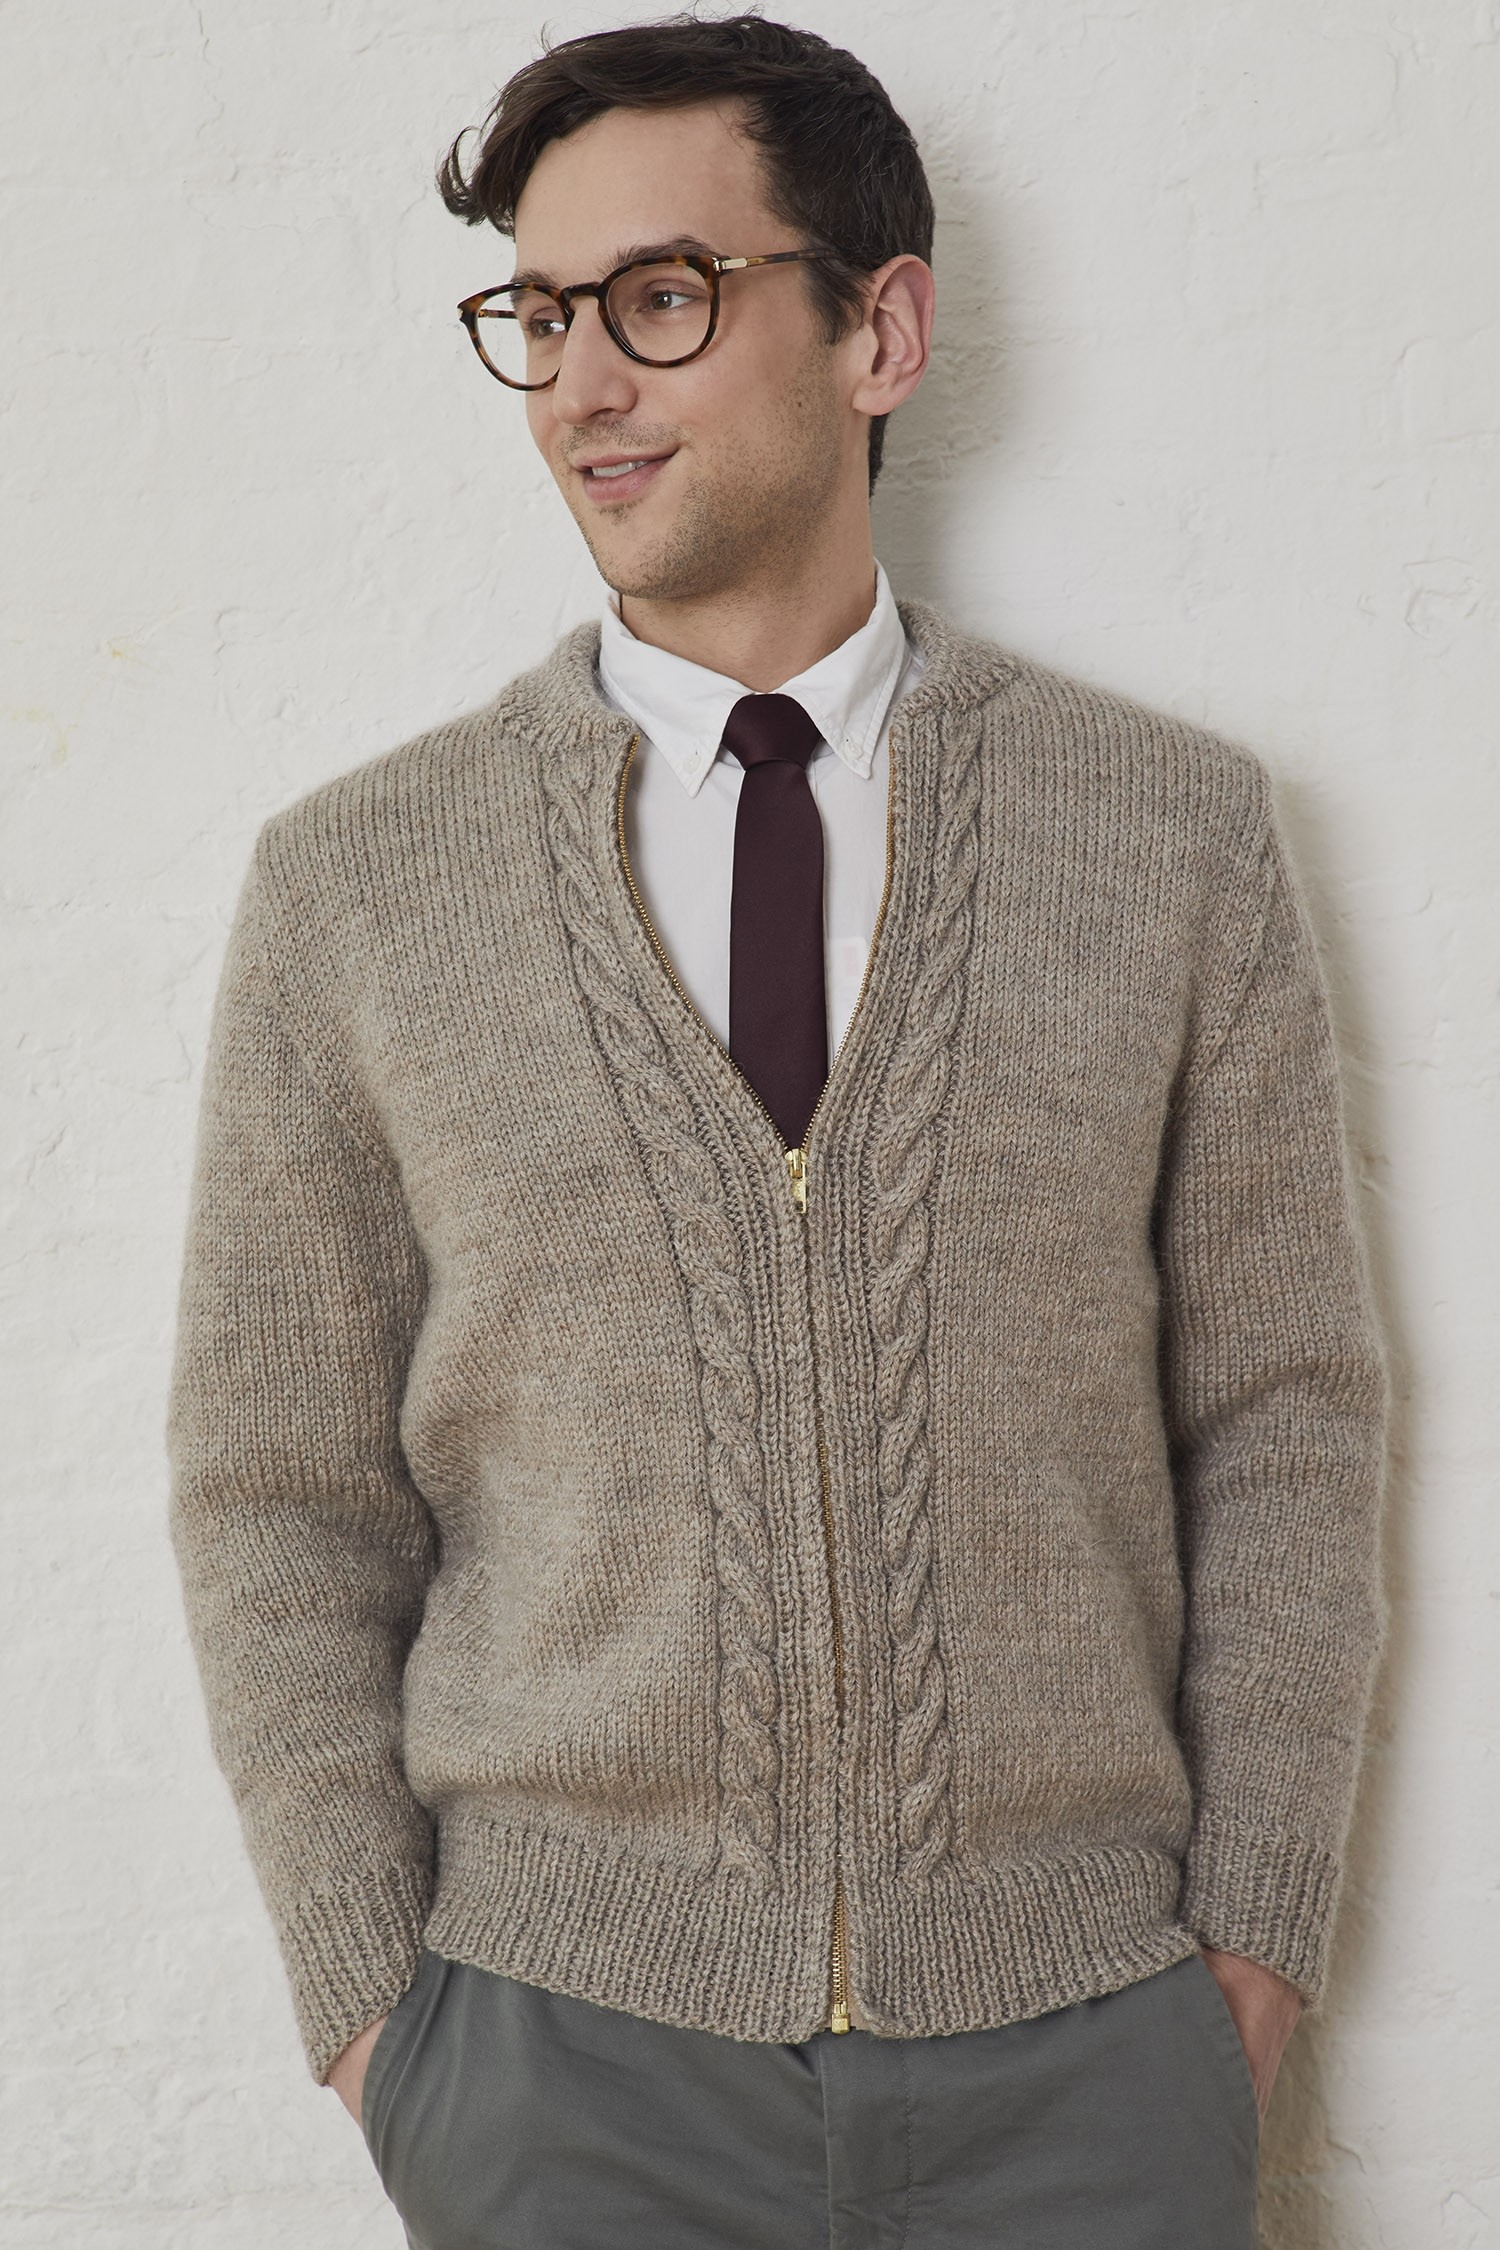 Mens Cable Knit Sweater Pattern